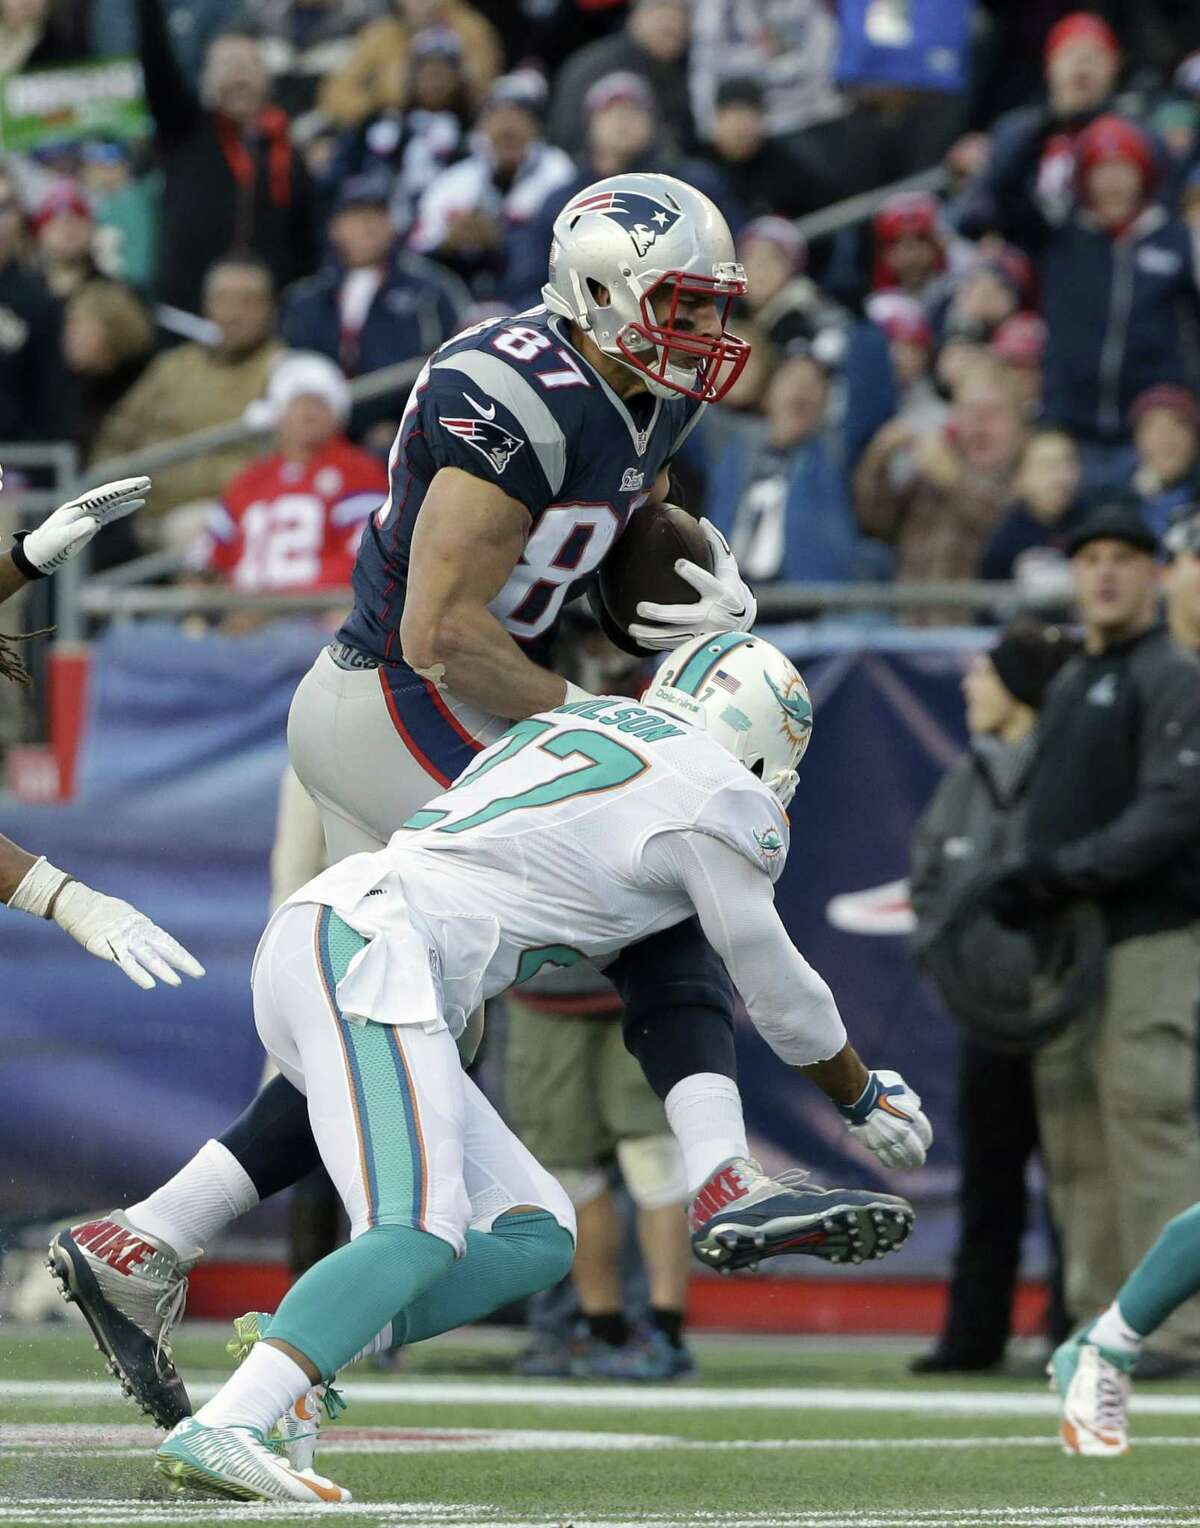 New England Patriots tight end Rob Gronkowski, top, advances the ball while under pressure from Miami Dolphins strong safety Jimmy Wilson, below, in the second half of an NFL football game Sunday, Dec. 14, 2014, in Foxborough, Mass. (AP Photo/Steven Senne)